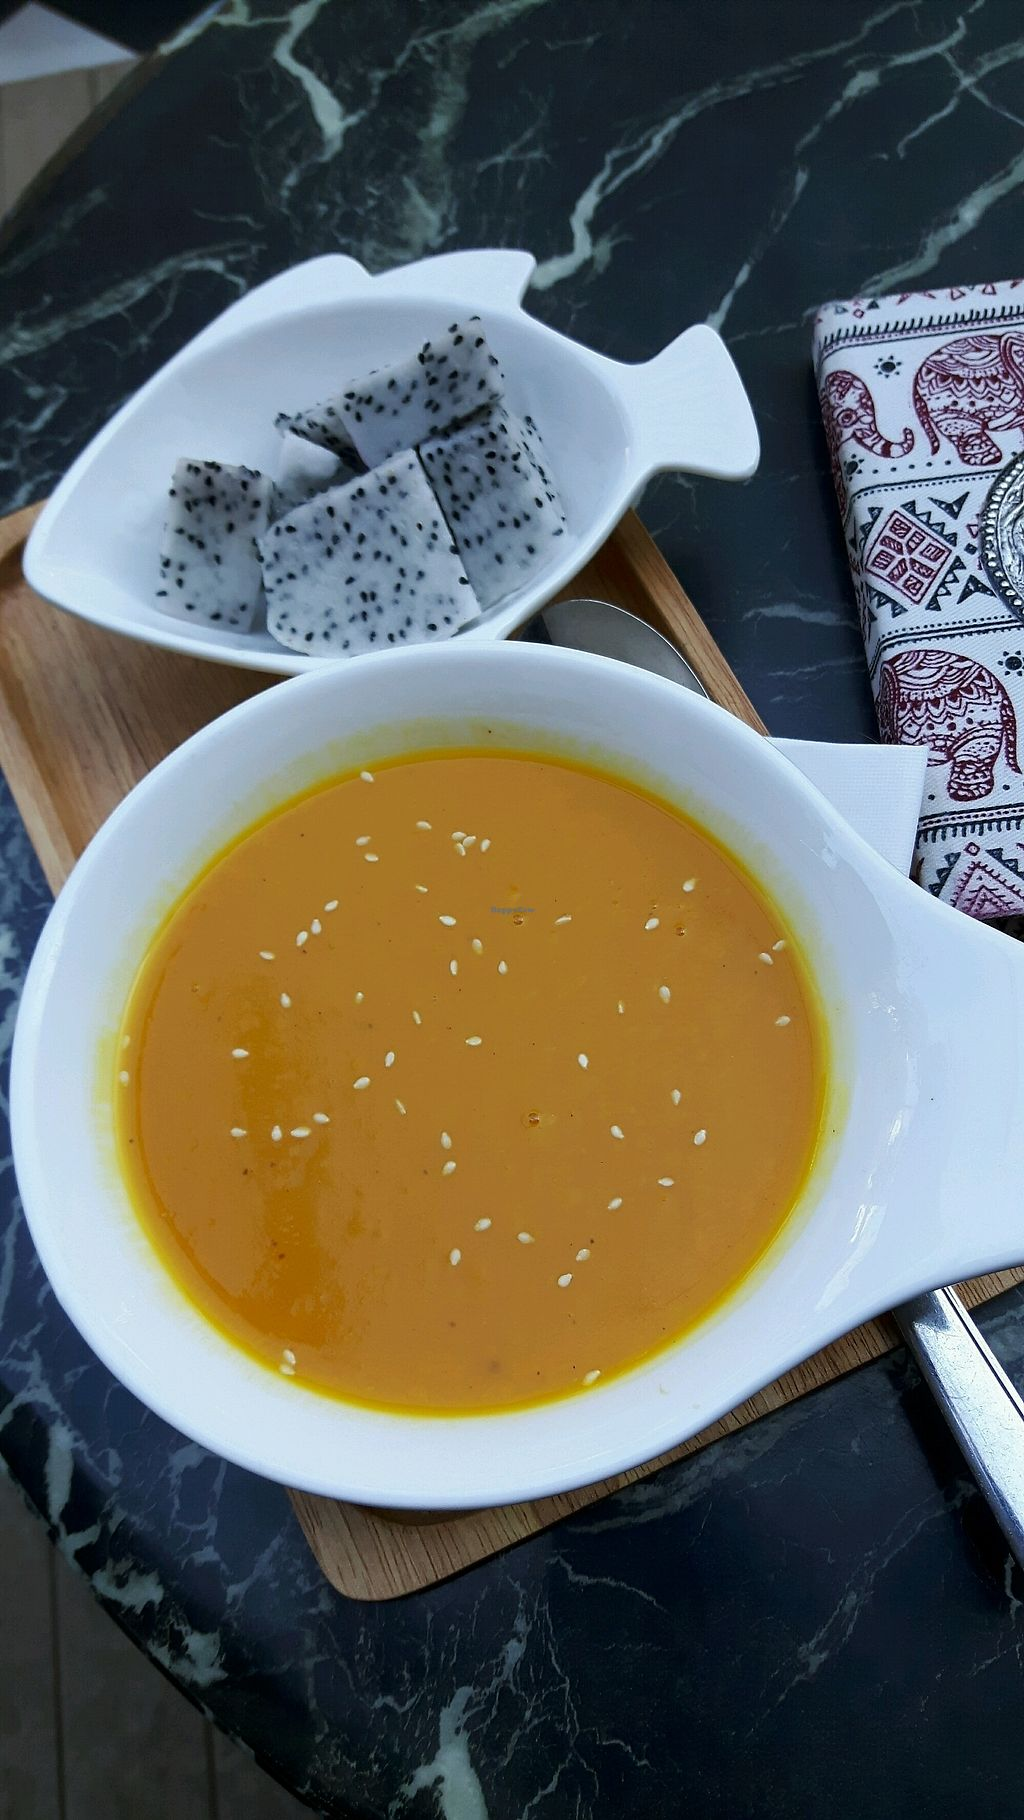 """Photo of Coco&Co.  by <a href=""""/members/profile/CharityBosua"""">CharityBosua</a> <br/>Pumpkin soup with fruits instead of bread (Bread not vegan) <br/> January 13, 2018  - <a href='/contact/abuse/image/77059/346031'>Report</a>"""